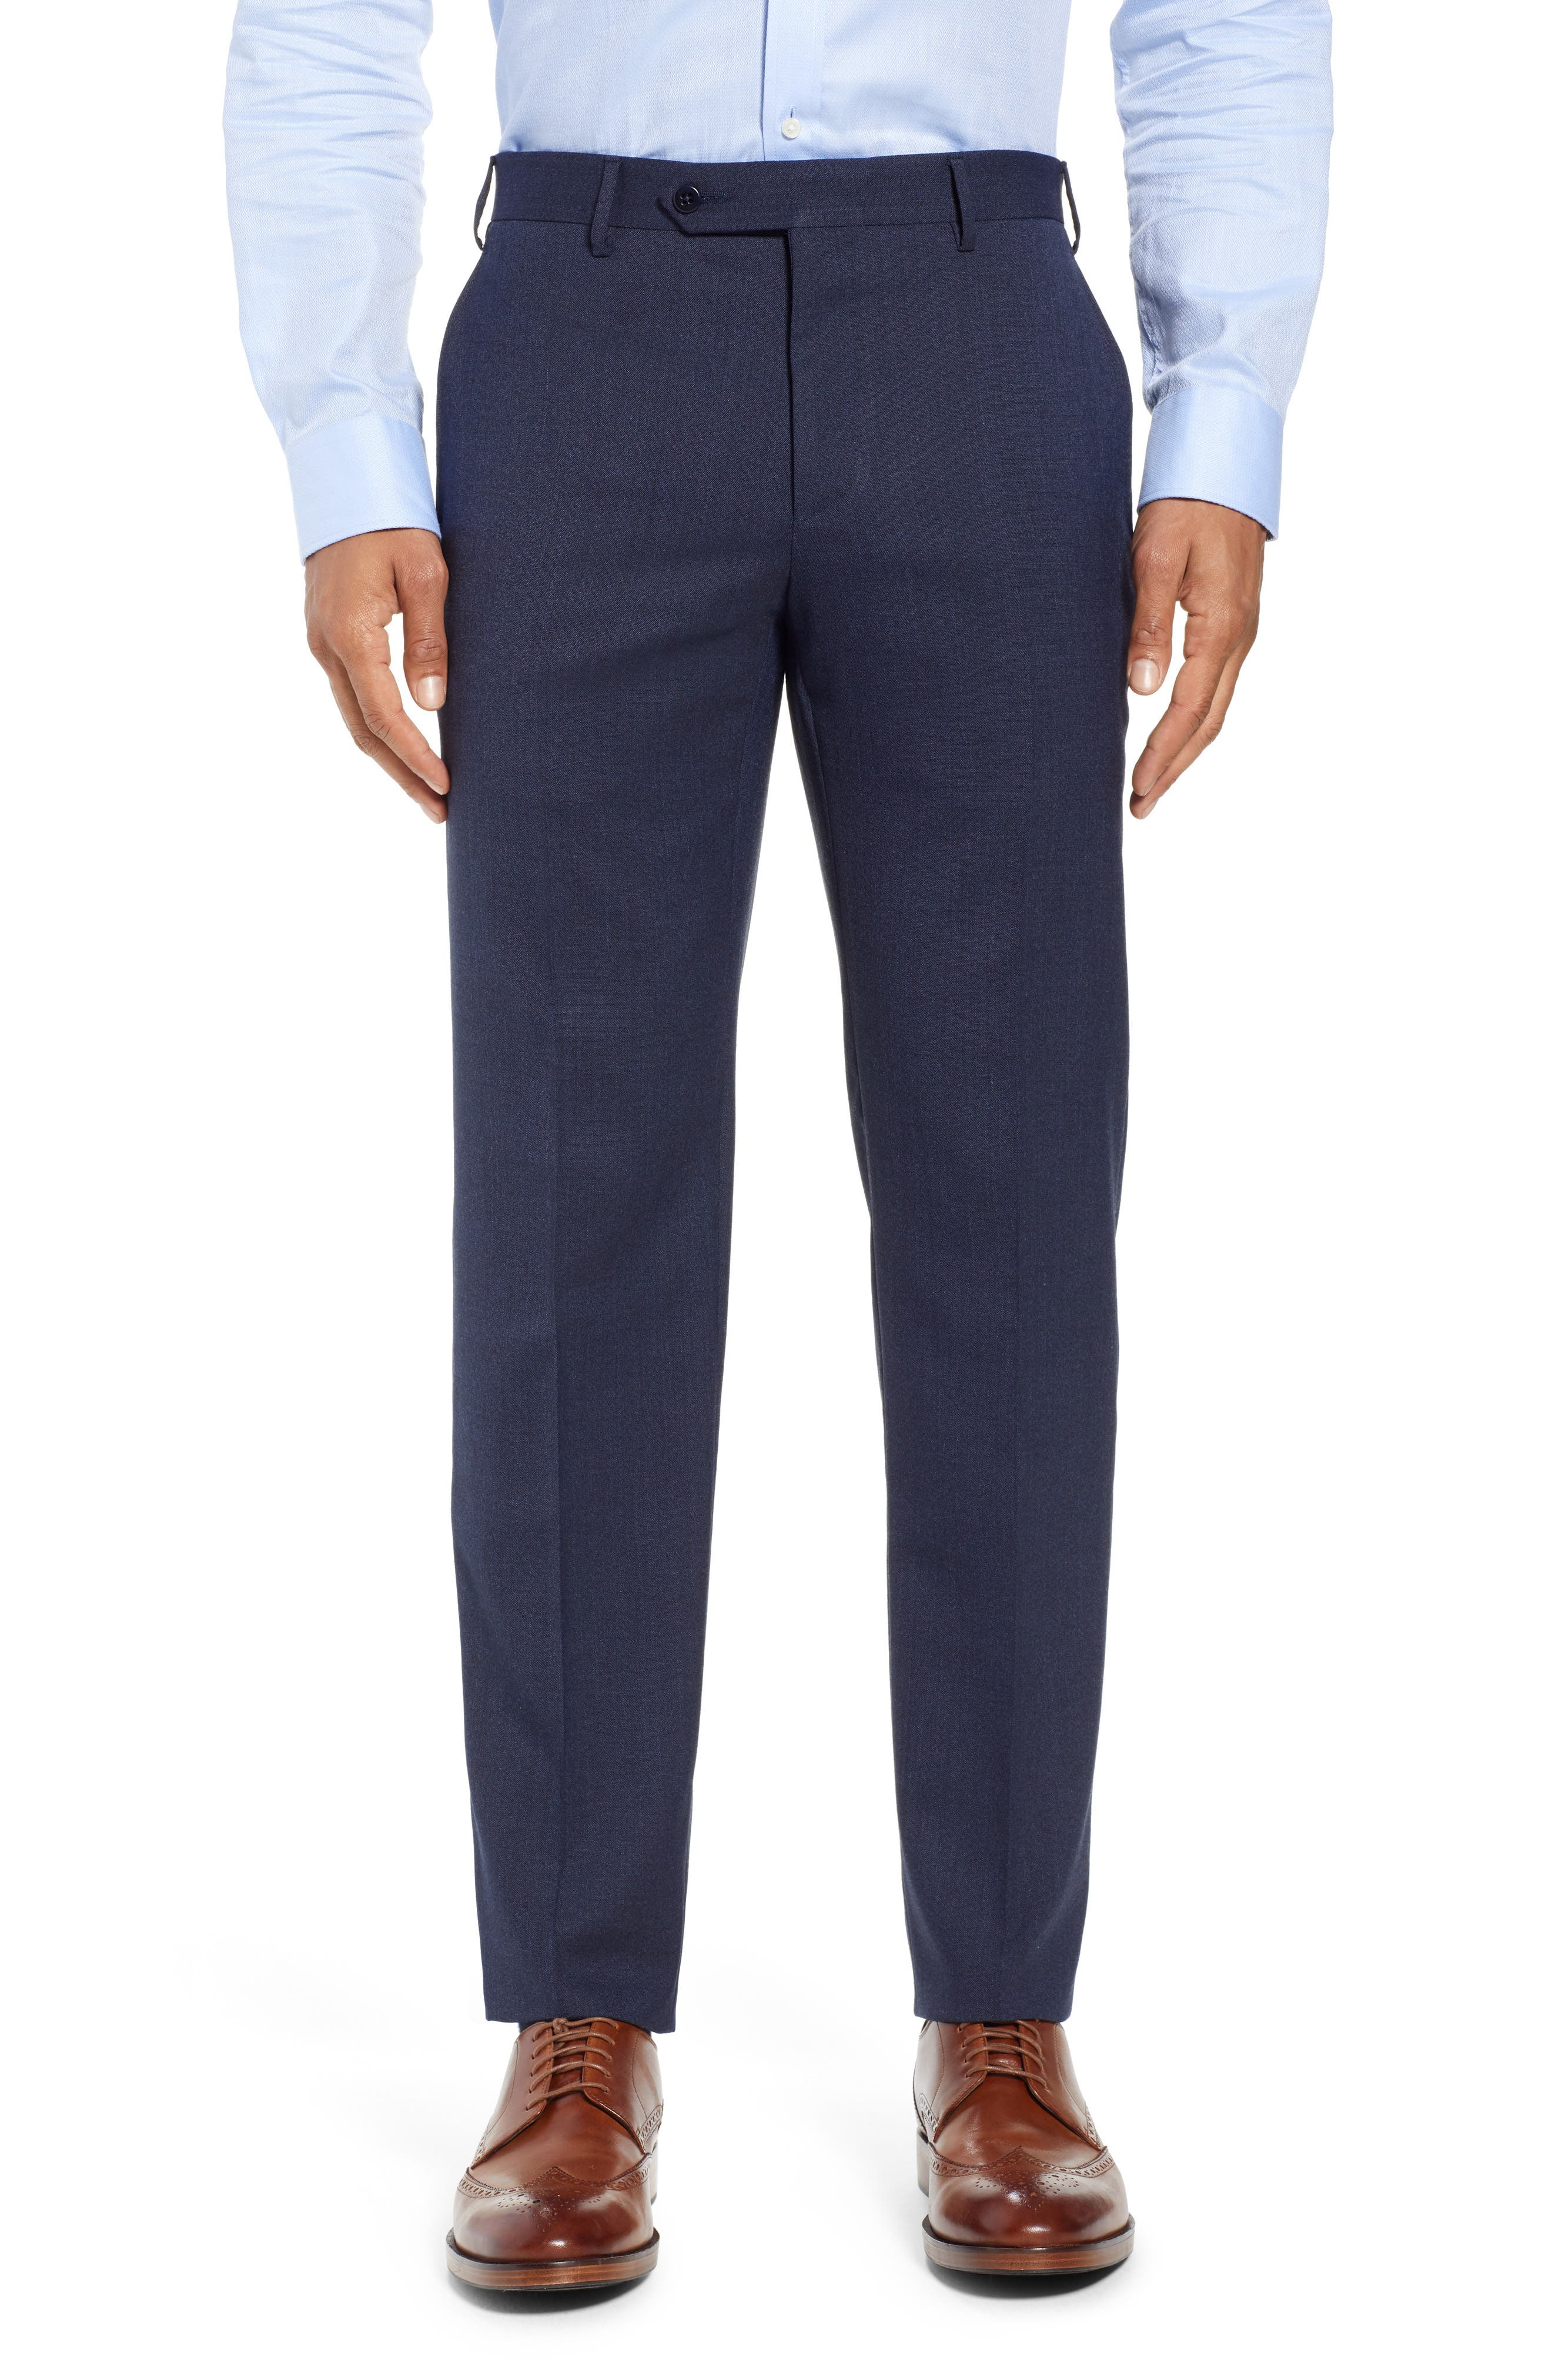 ZANELLA CURTIS FLAT FRONT STRETCH WOOL BLEND TROUSERS